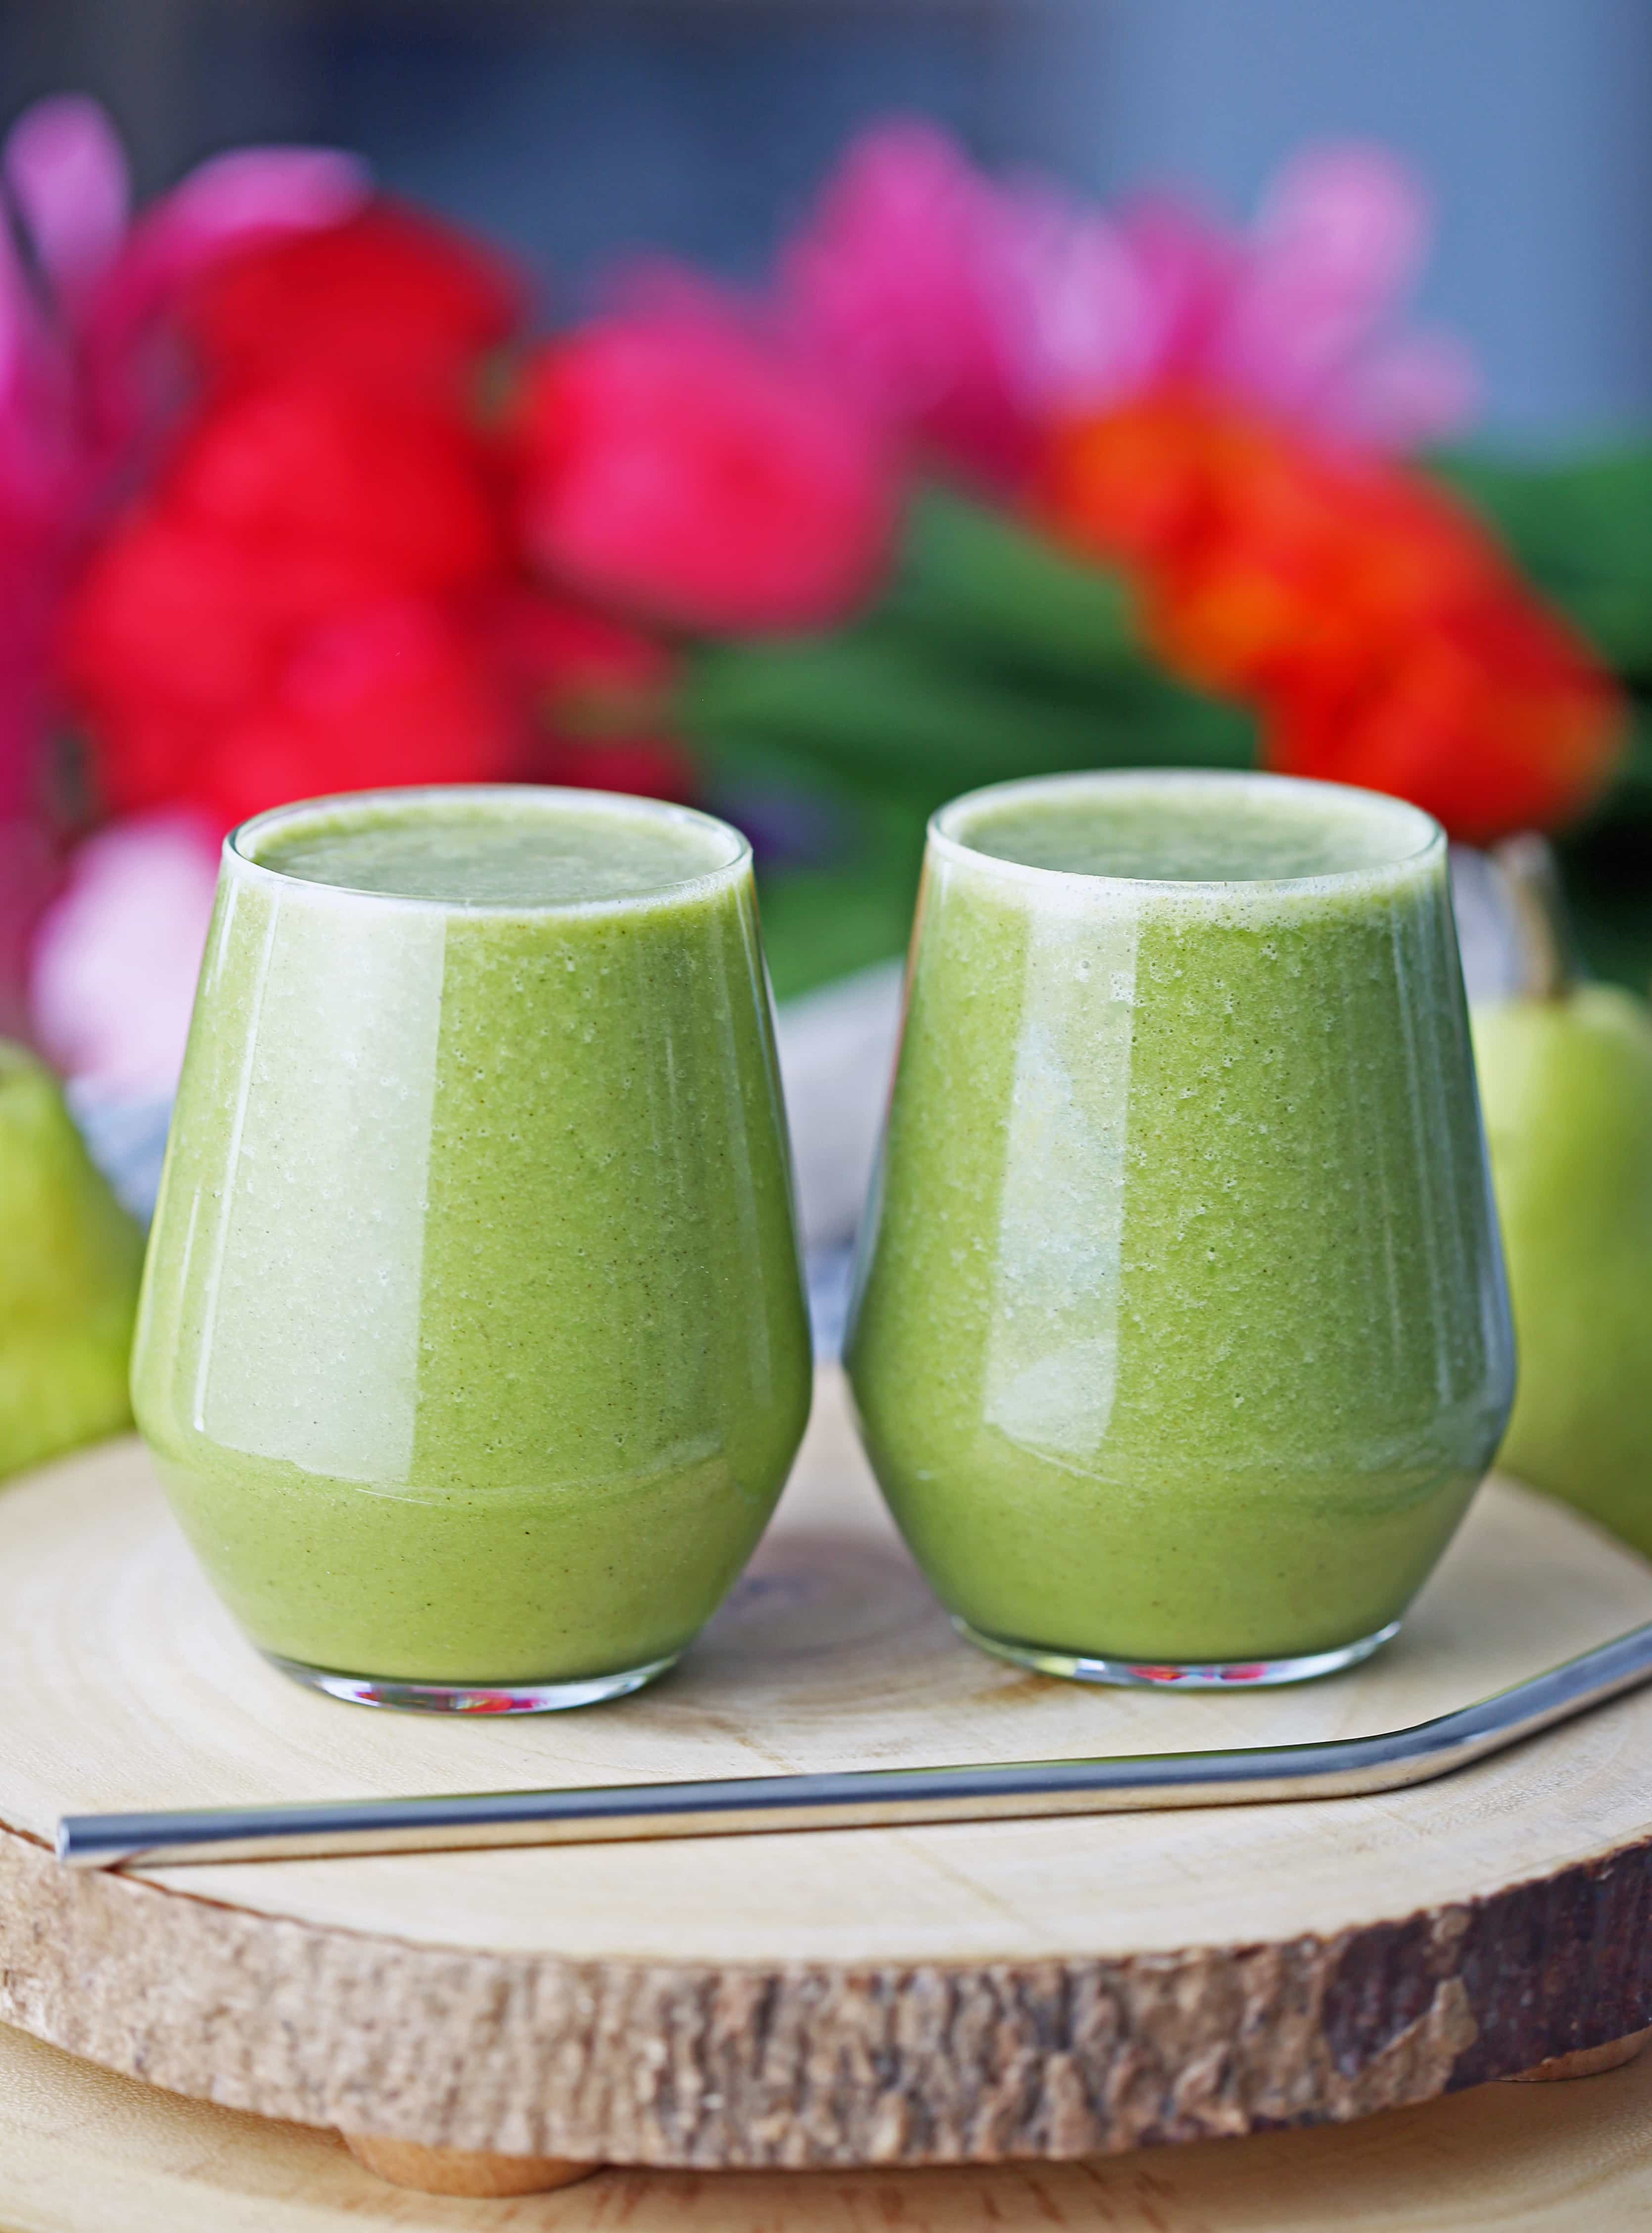 Cinnamon pear green smoothie in two glasses side by side on a wooden board.